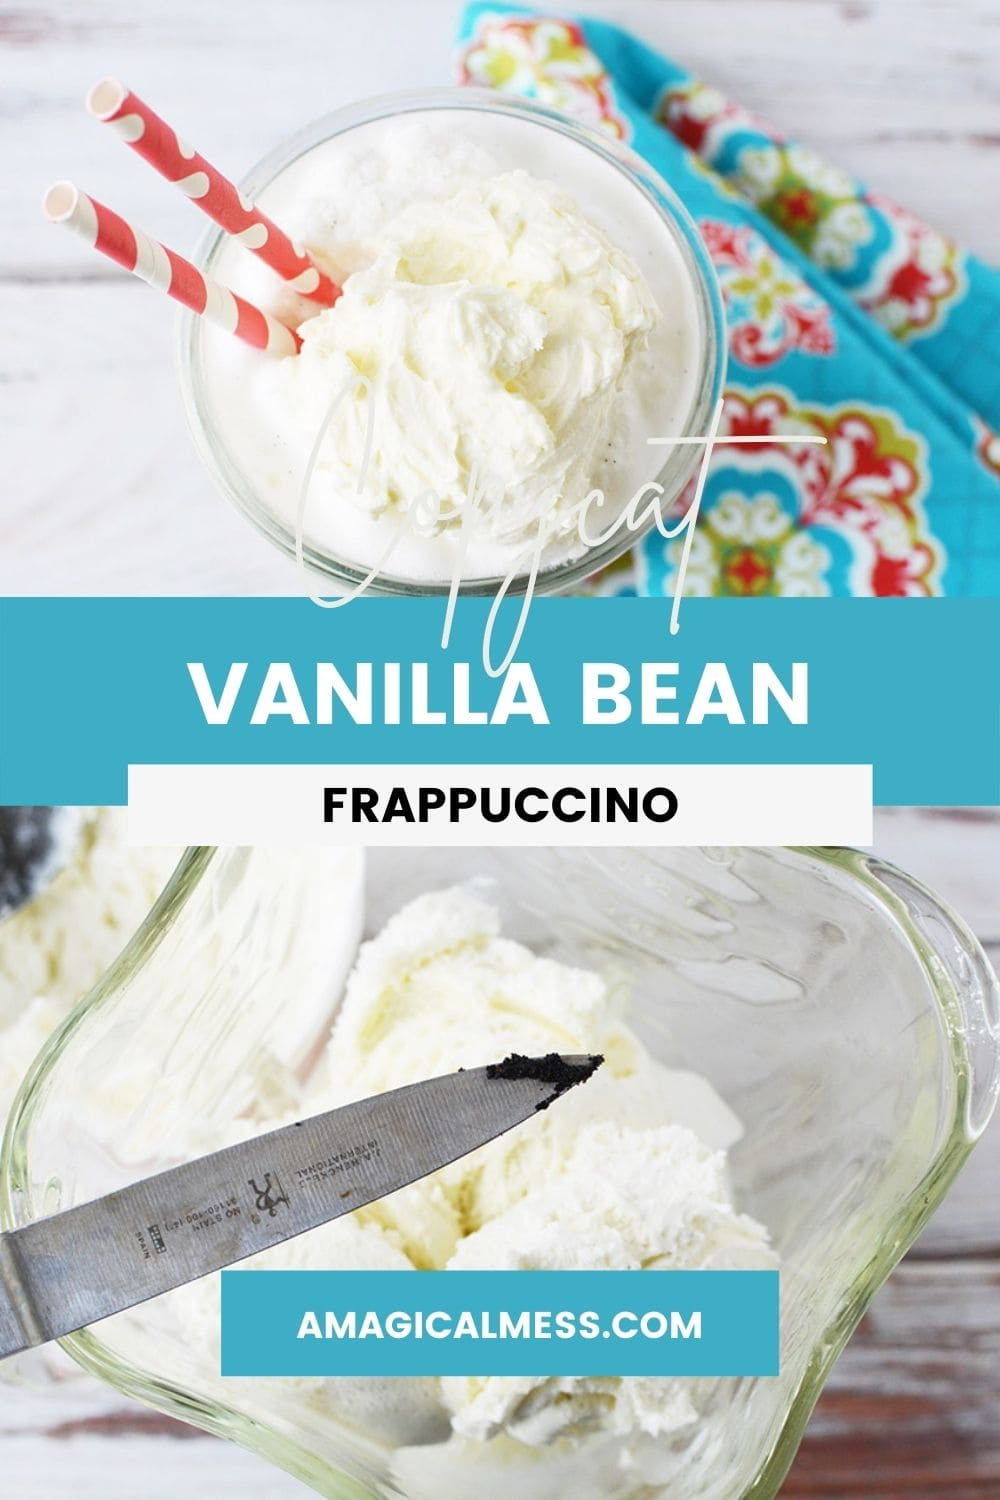 glass of a vanilla frappuccino and vanilla bean on a knife